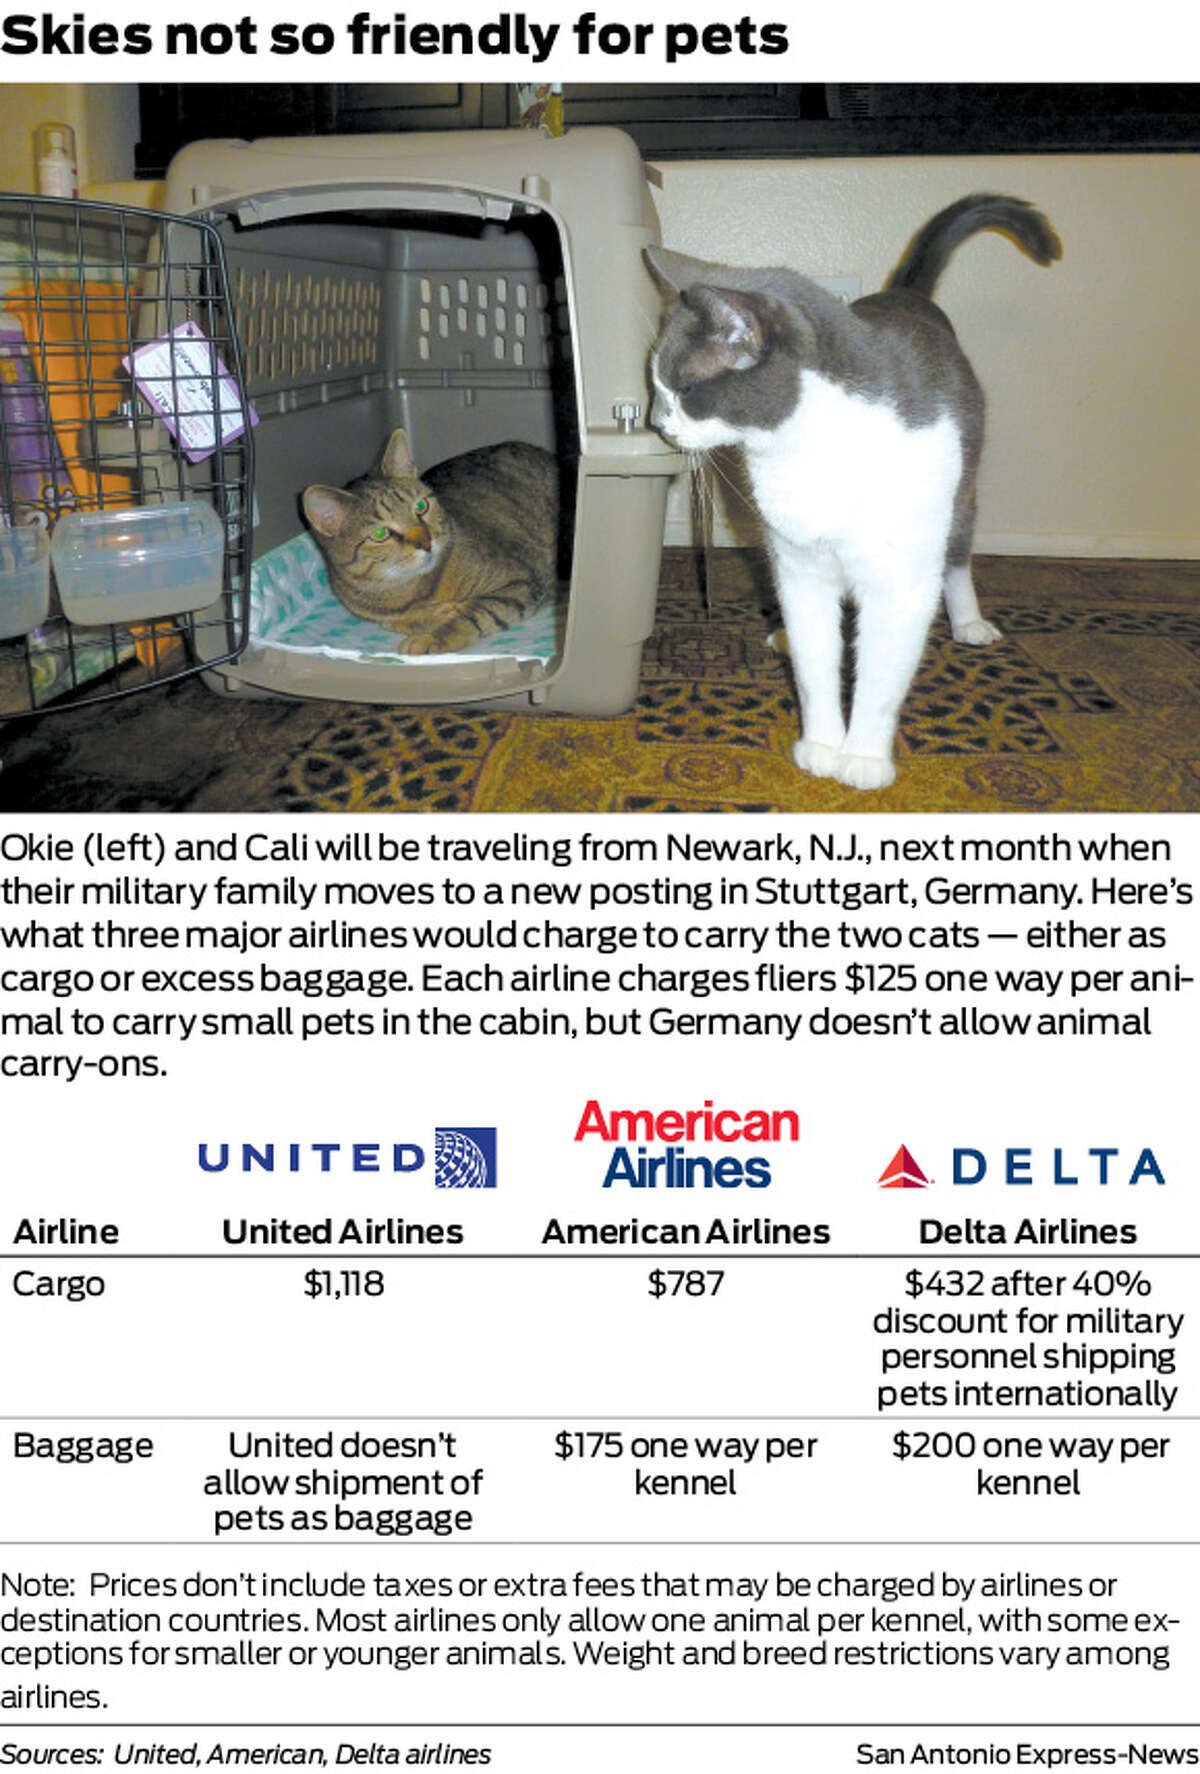 Okie (left) and Cali will be traveling from Newark, N.J., next month when their military family moves to a new posting in Stuttgart, Germany. Here's what three major airlines would charge to carry the two cats - either as cargo or excess baggage. Each airline charges fliers $125 one way per animal to carry small pets in the cabin, but Germany doesn't allow animal carry-ons.